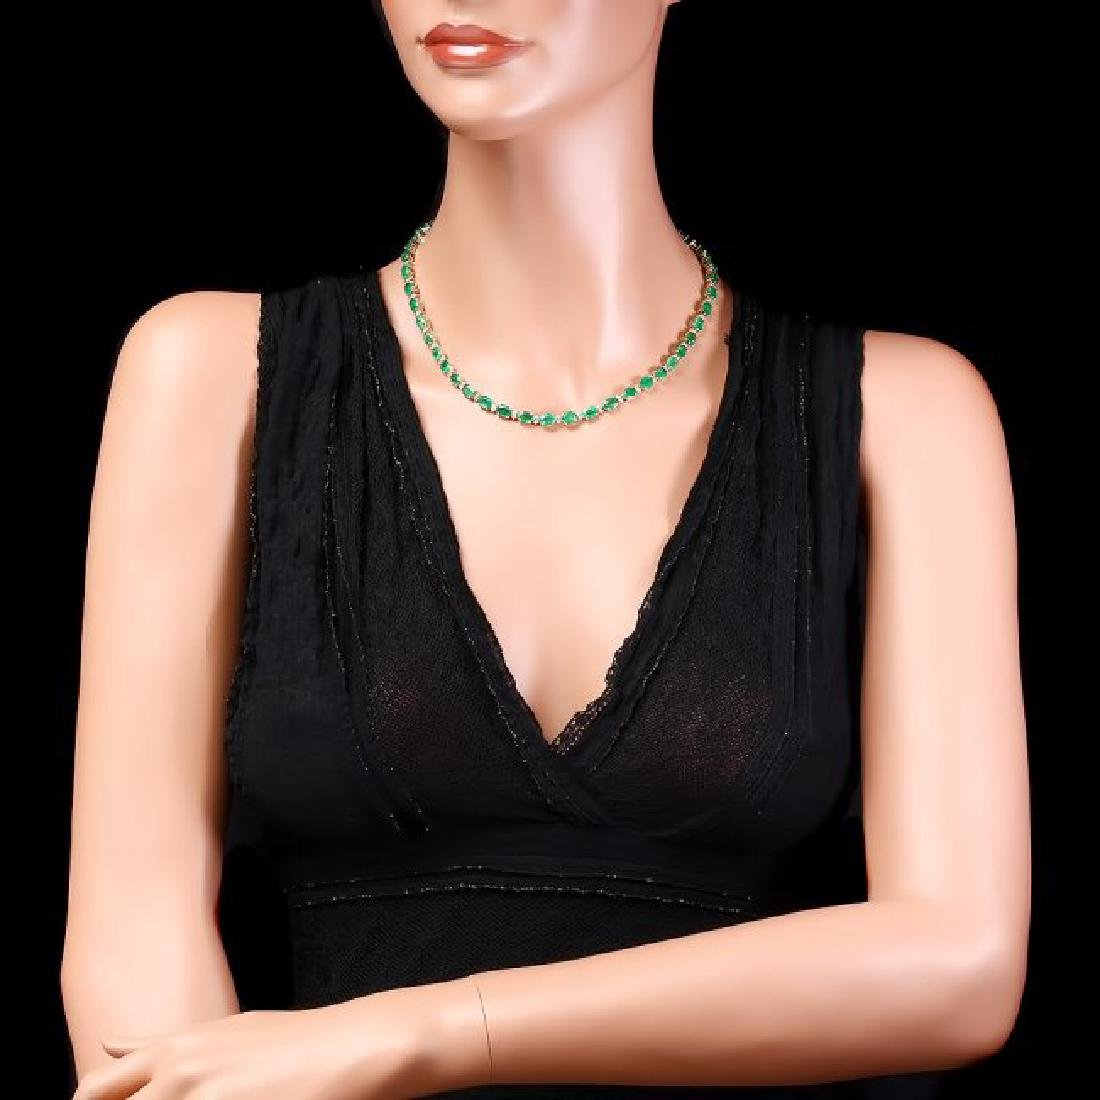 14k Gold 32ct Emerald 1.75ct Diamond Necklace - 3